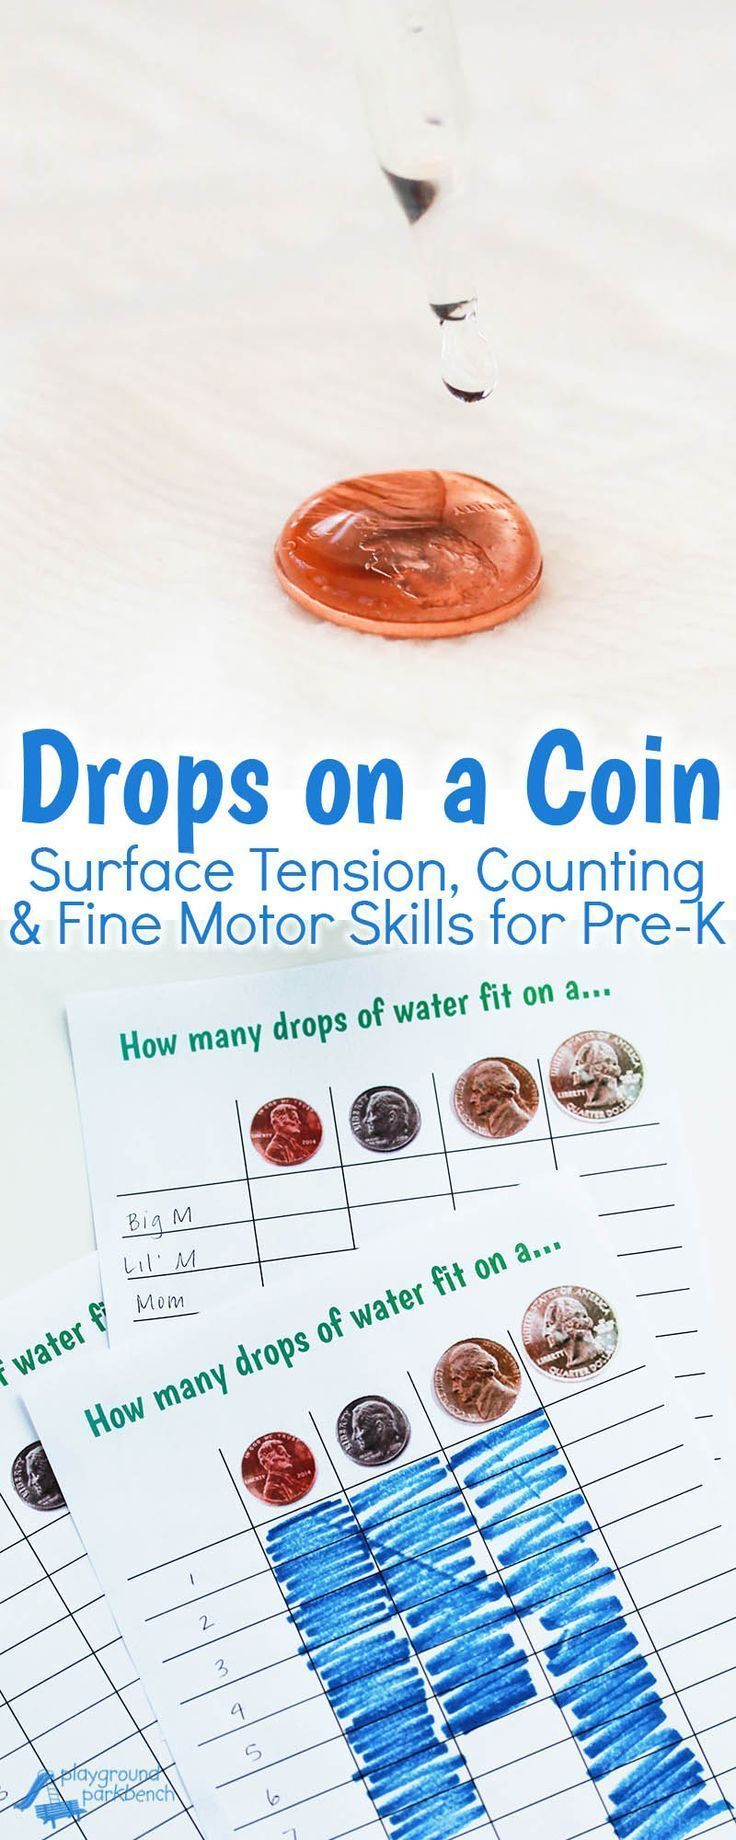 Quick and easy simple preschool STEM activities explores water, surface tension and coins, while challenging fine motor skills with an eye dropper. Free printable chart to record results as a class, trials by individual students or record results in a bar